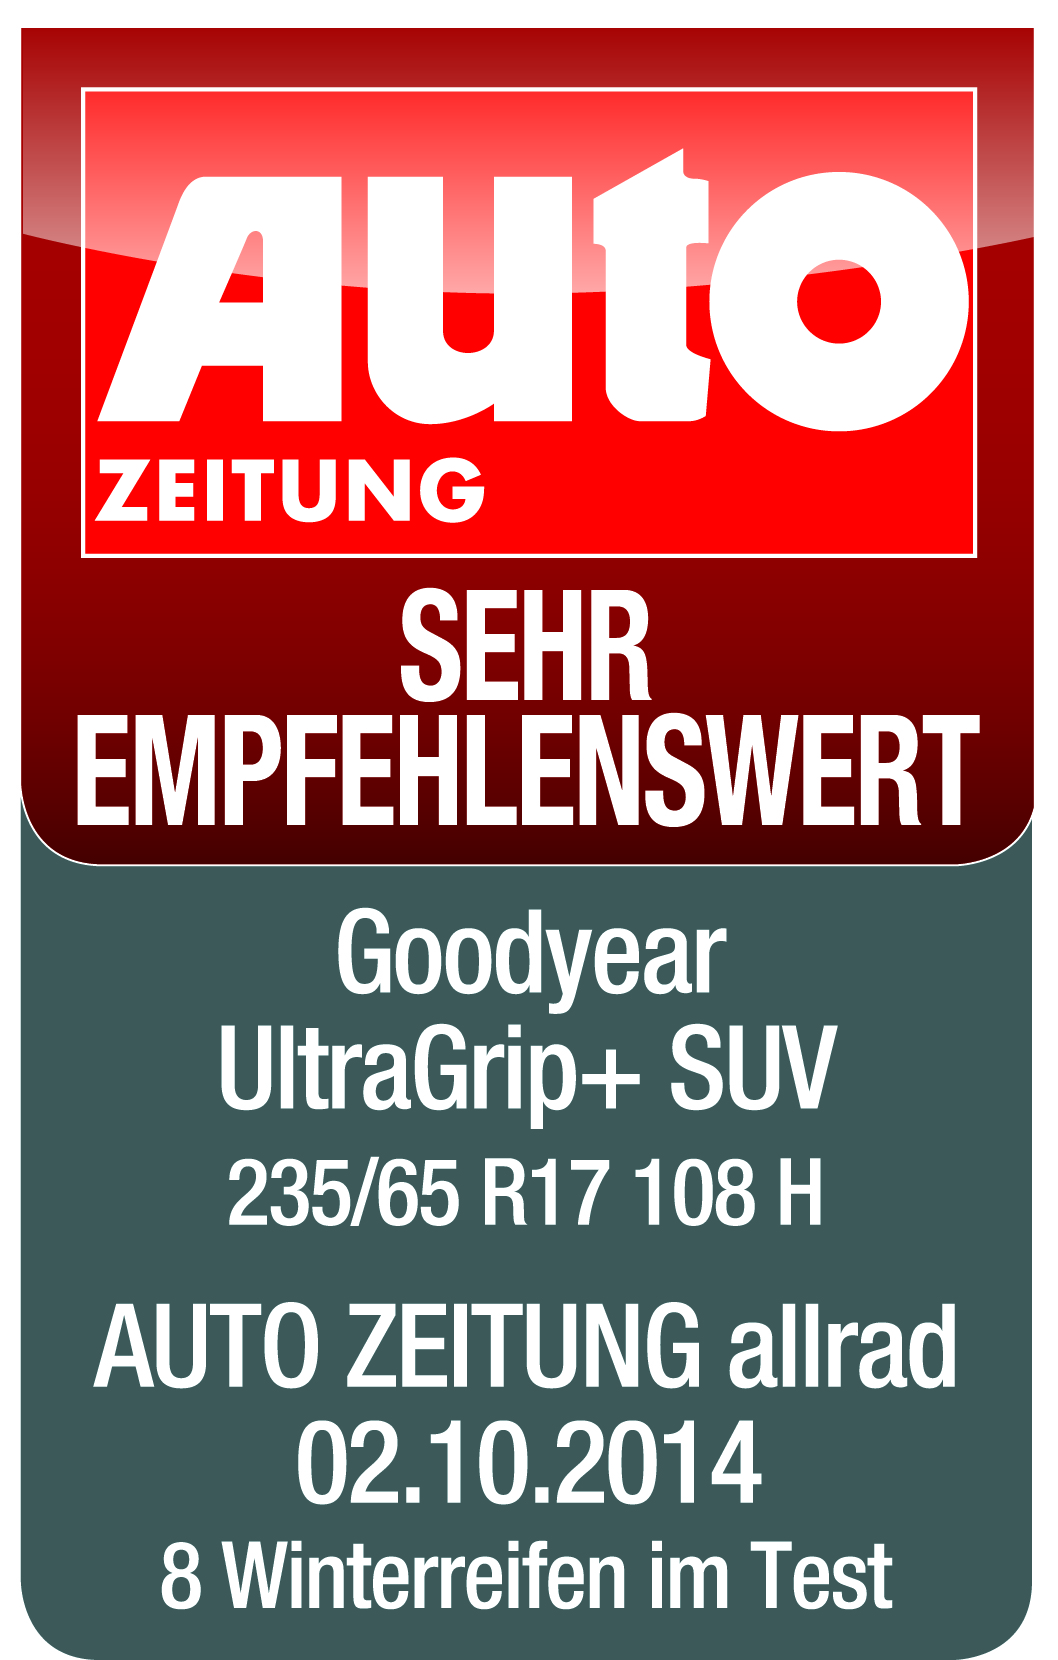 Goodyear UltraGrip SUV - Highly recommended - Auto Zeitung - 2007